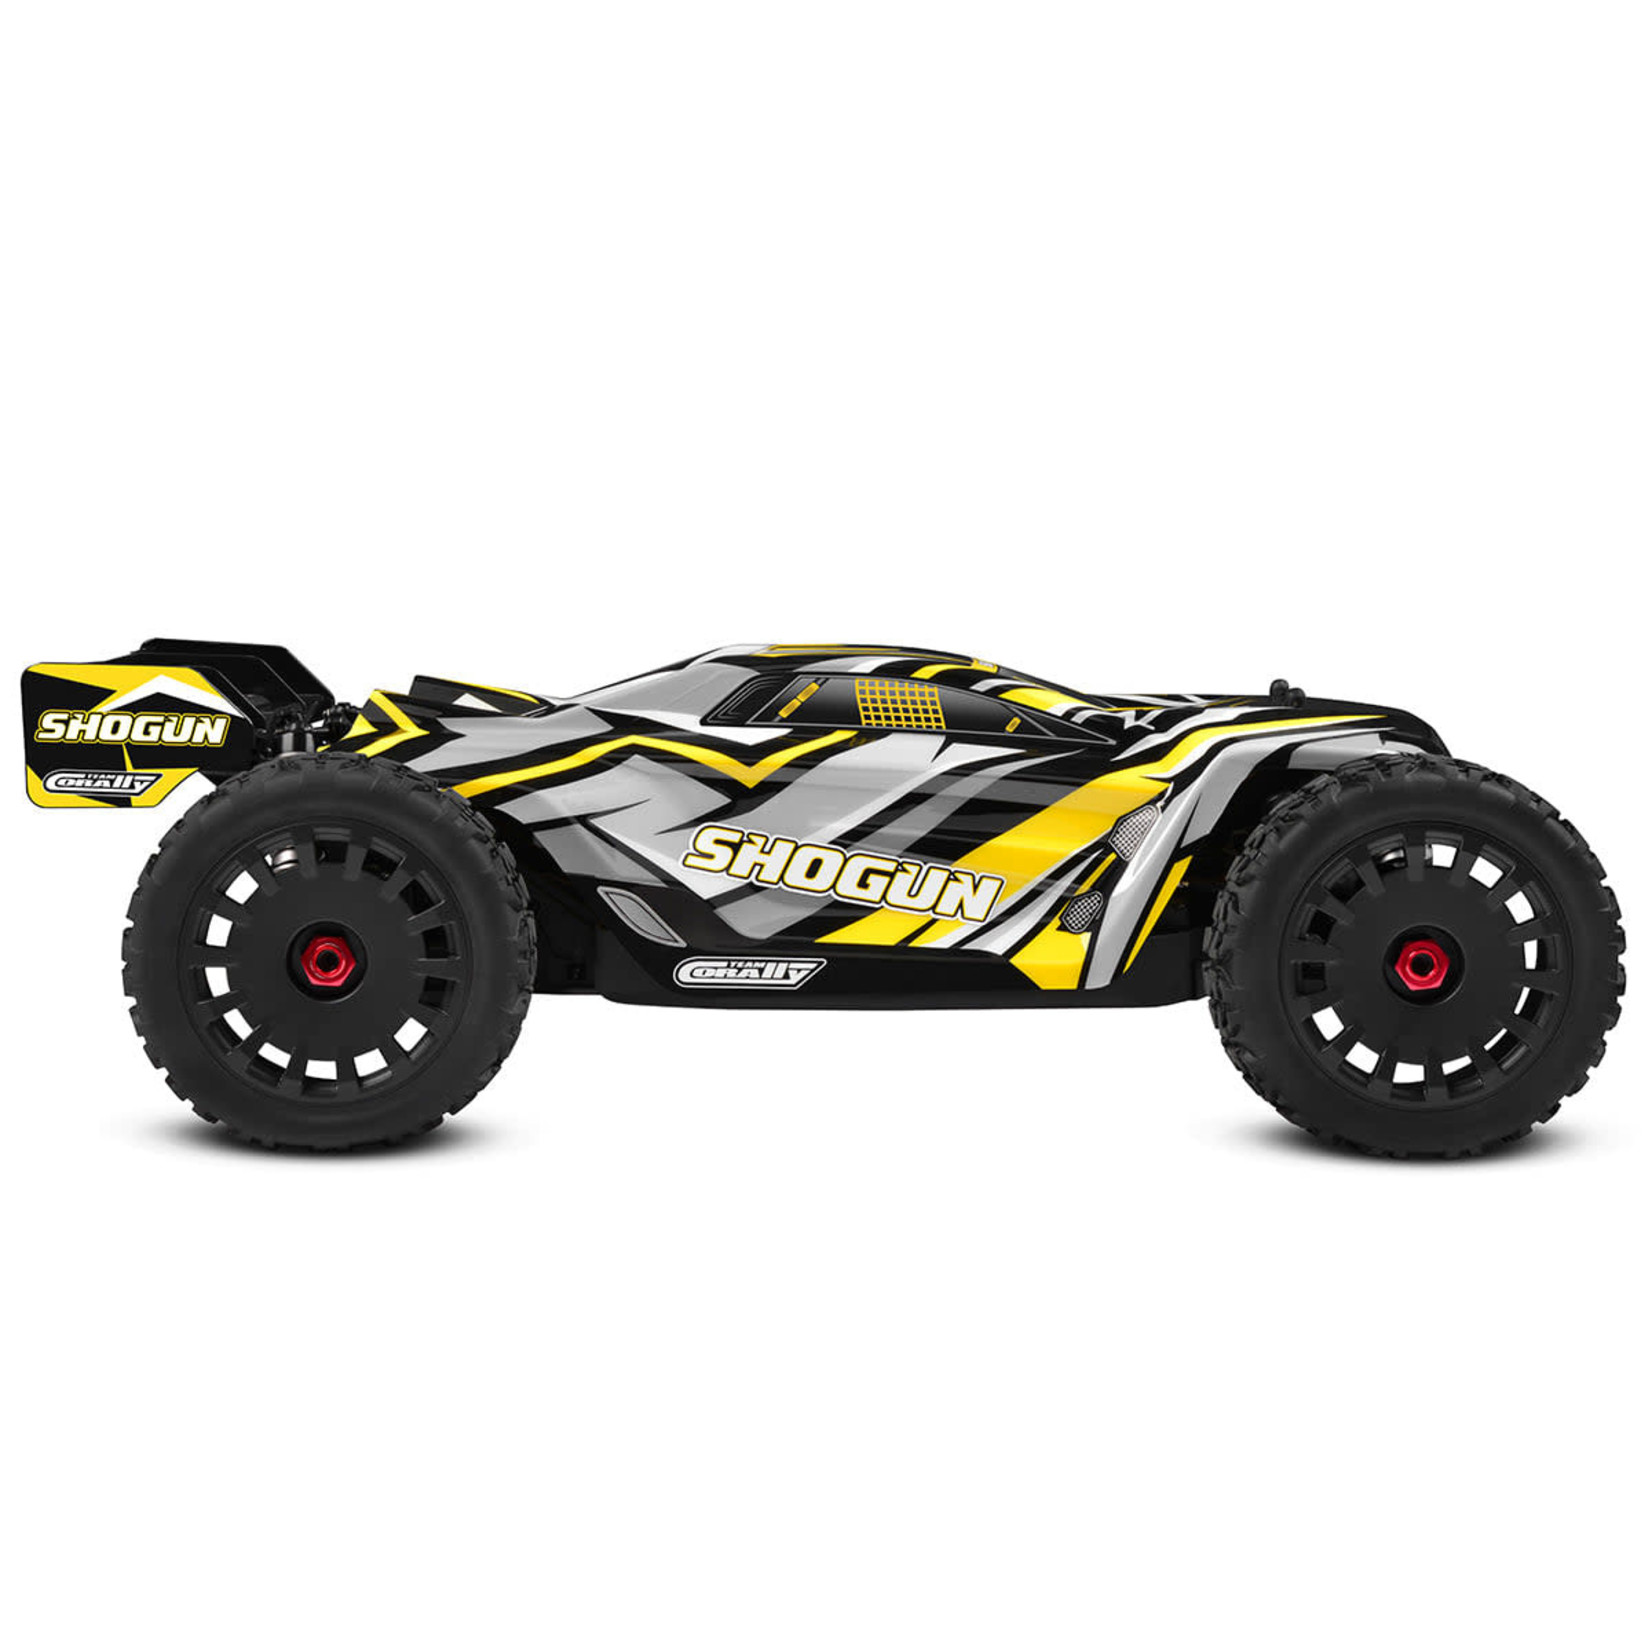 Team Corally COR00177 Team Corally 1/8 Shogun XP 4WD Truggy 6S Brushless RTR (No Battery or Charger)